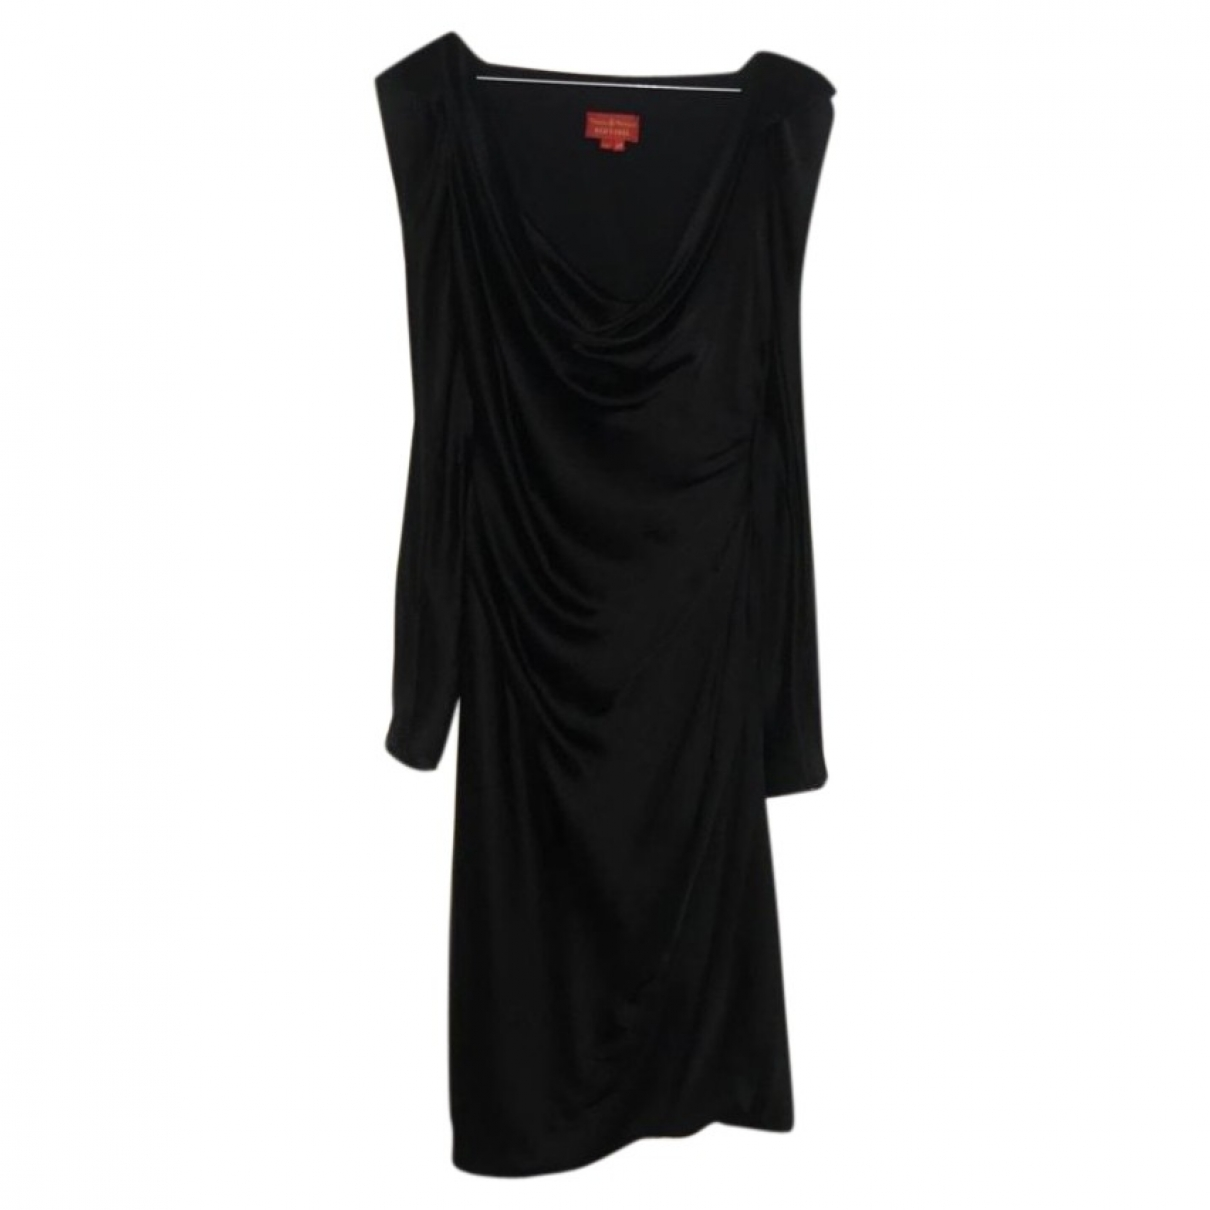 Vivienne Westwood \N Black Silk dress for Women 40 IT